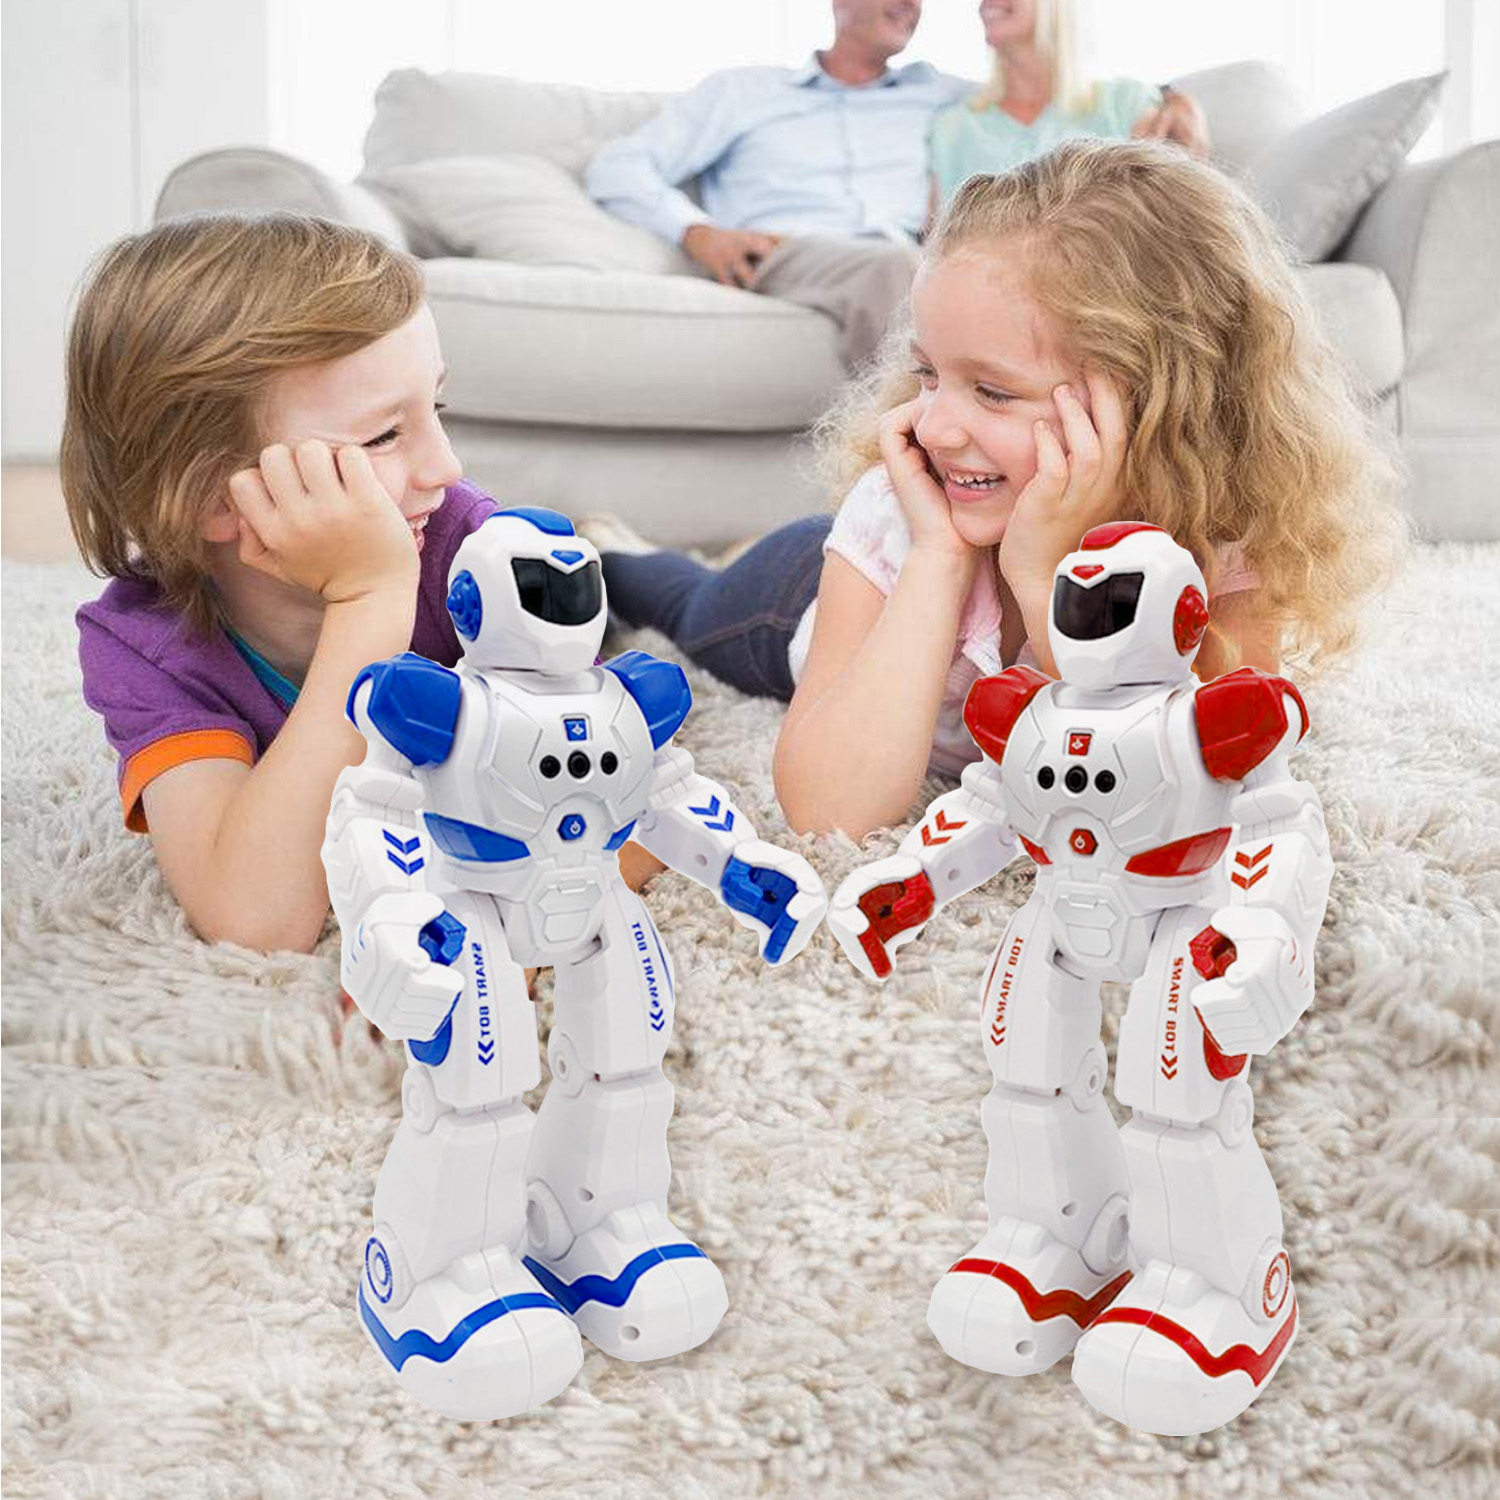 Intelligent Robot Toy RC Control Gesture Sensor Action Display Singing Dancing USB Charging Kids Birthday Gift